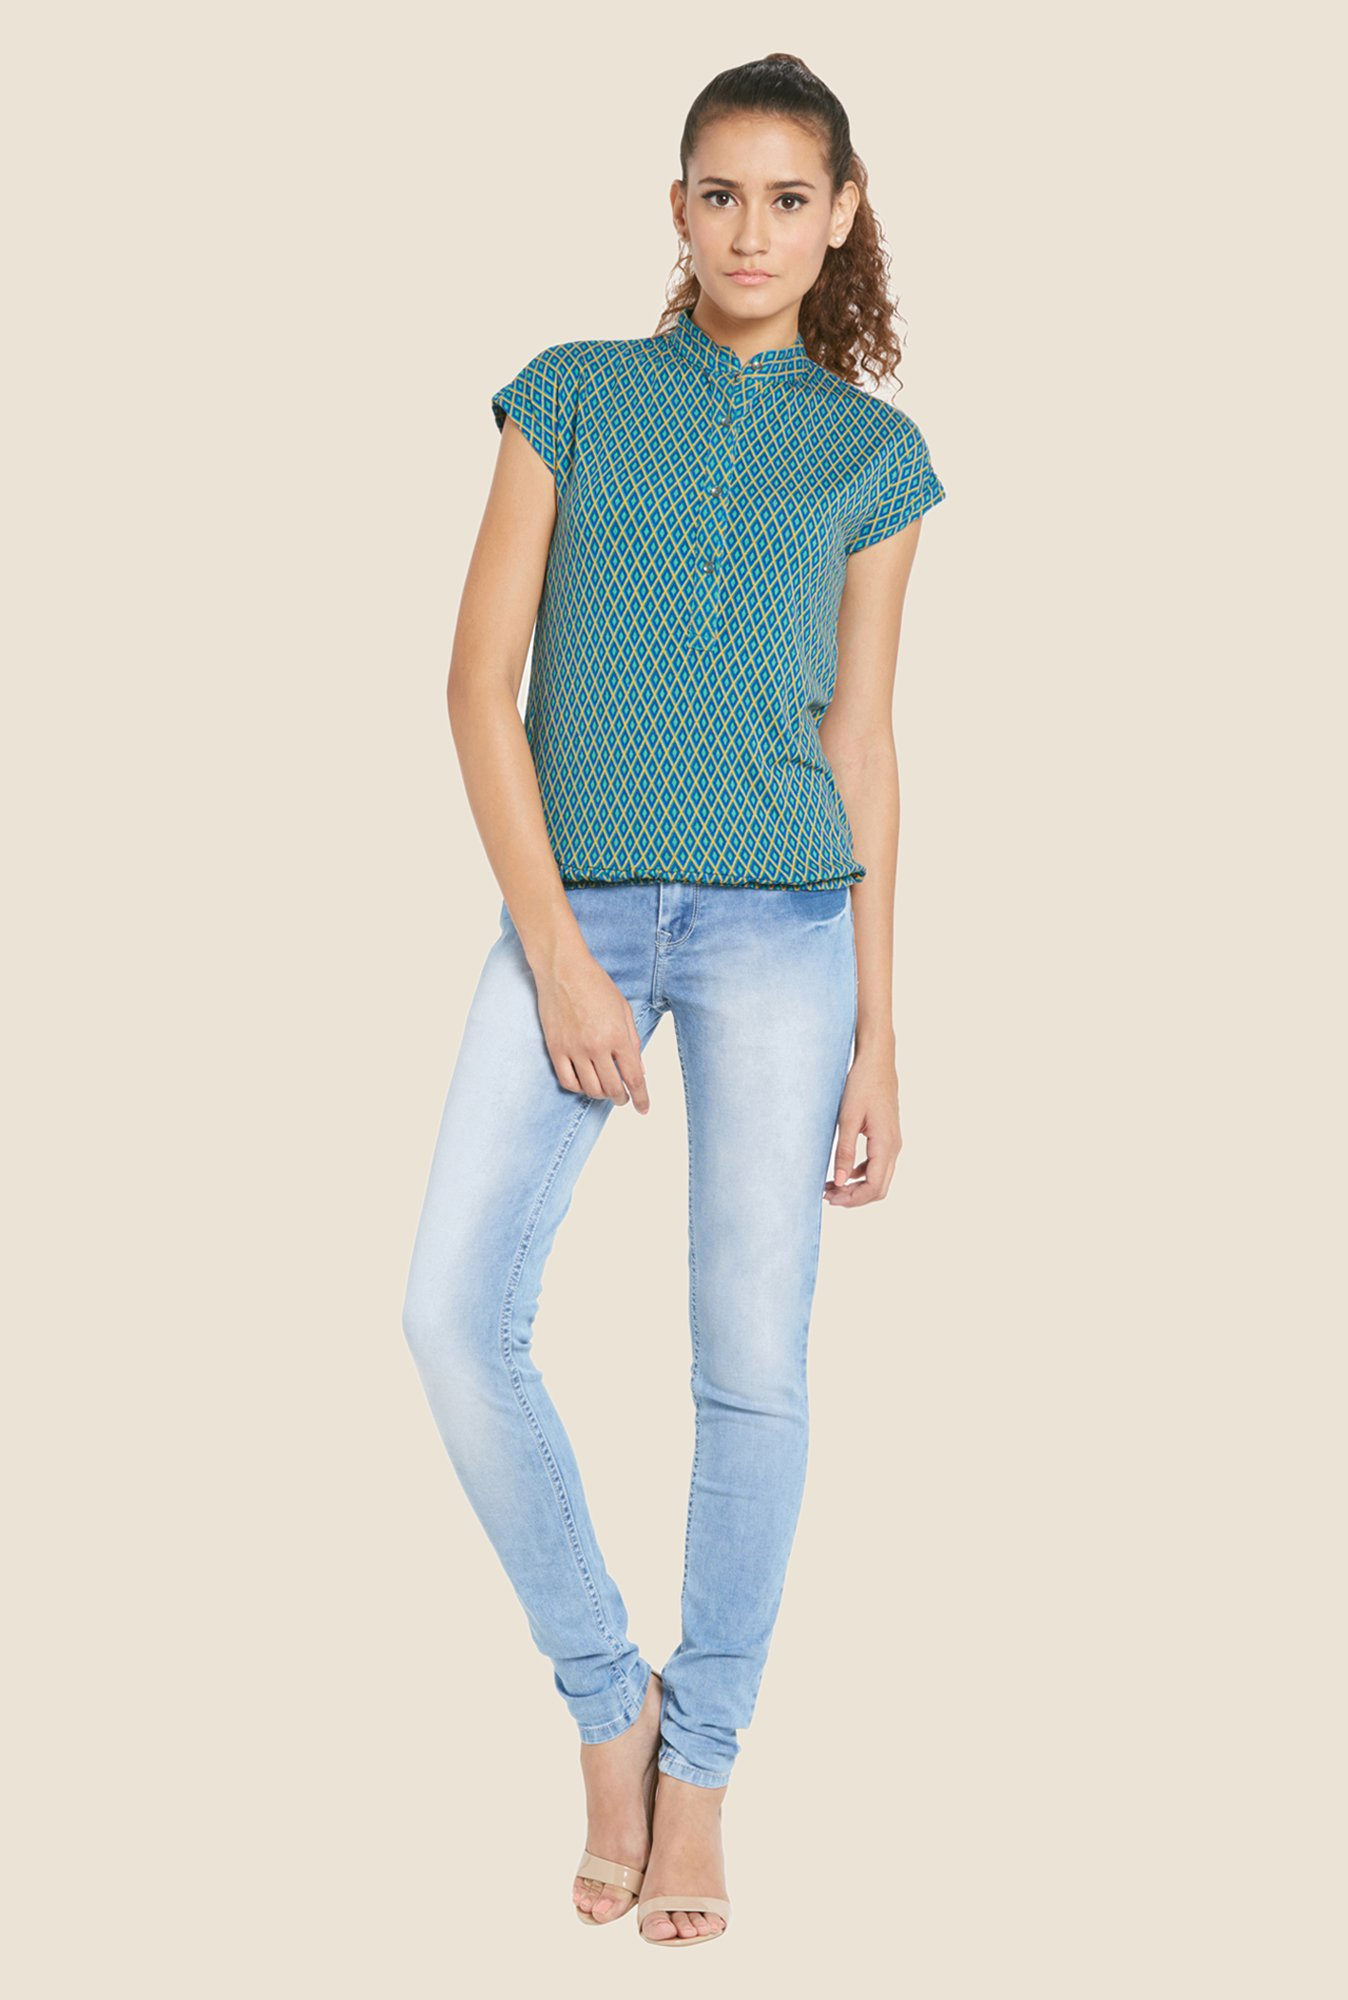 Globus Green Geometric Print Top